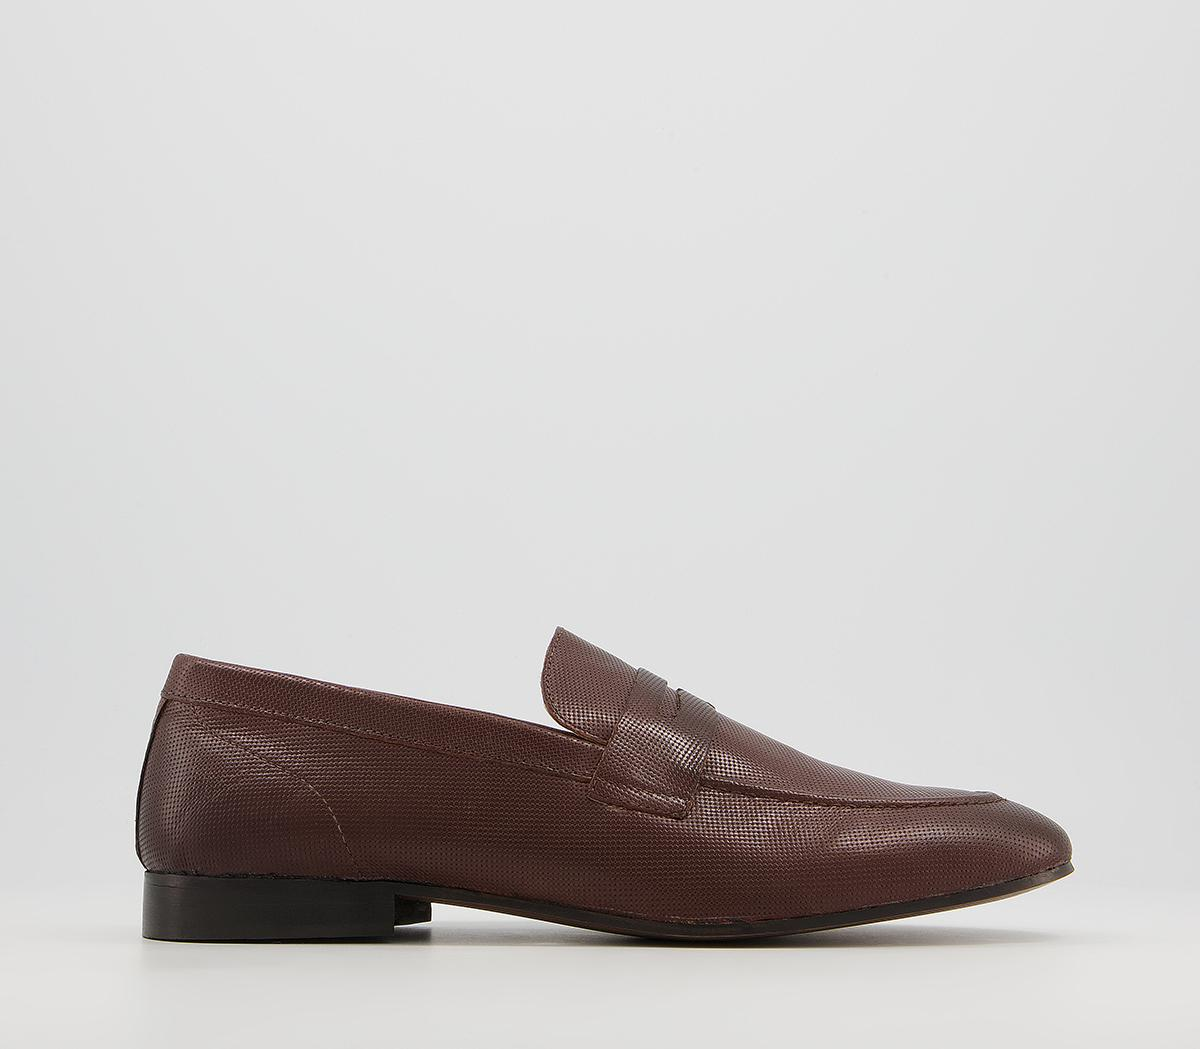 Bolton Loafers